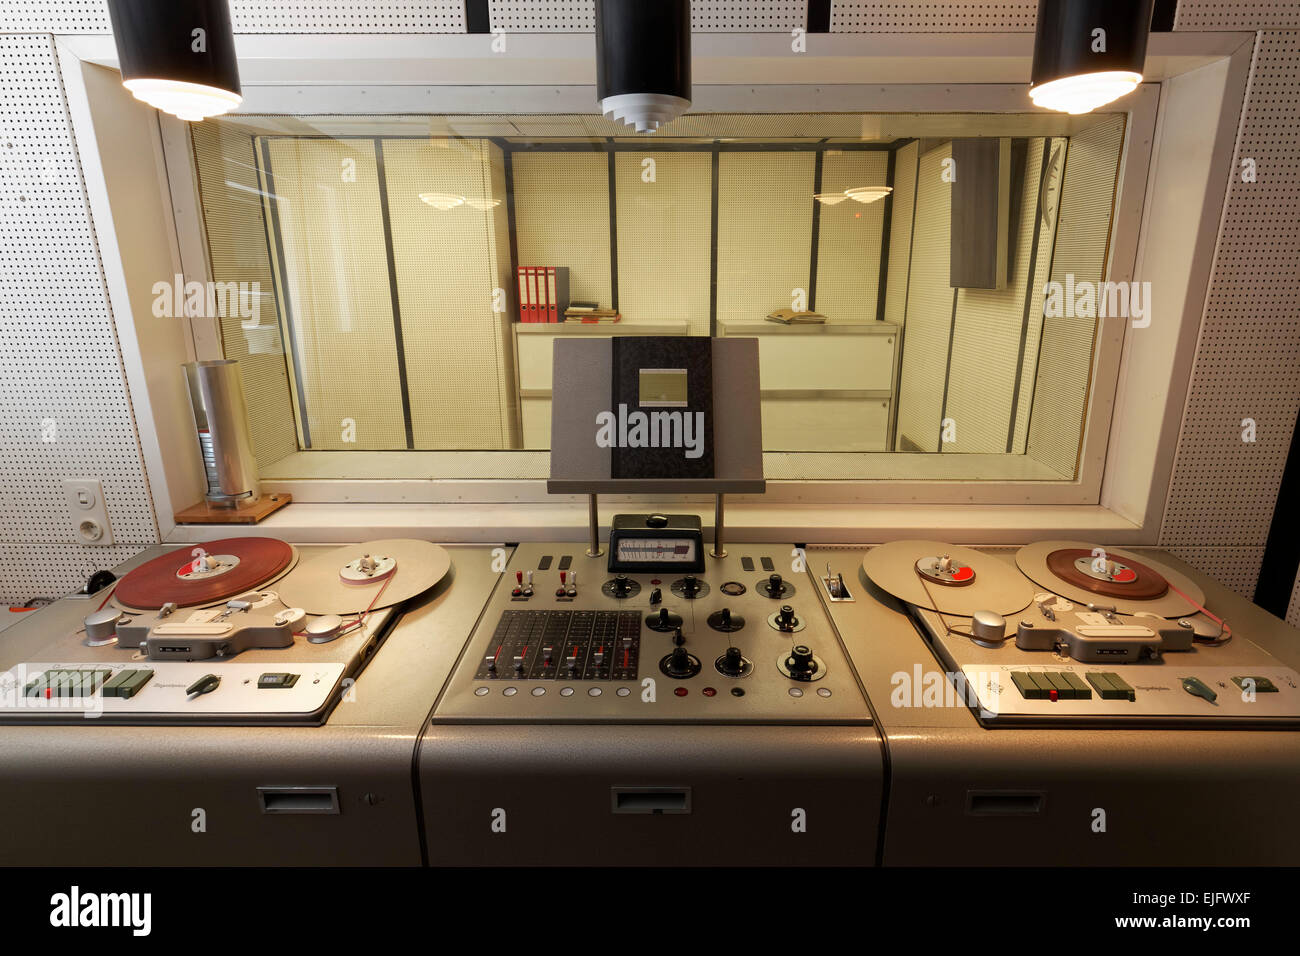 Tape Recorders Stock Photos Images Alamy Room Recorder Analog Recording Studio With Nuclear Bunker Kall Urft Eifel